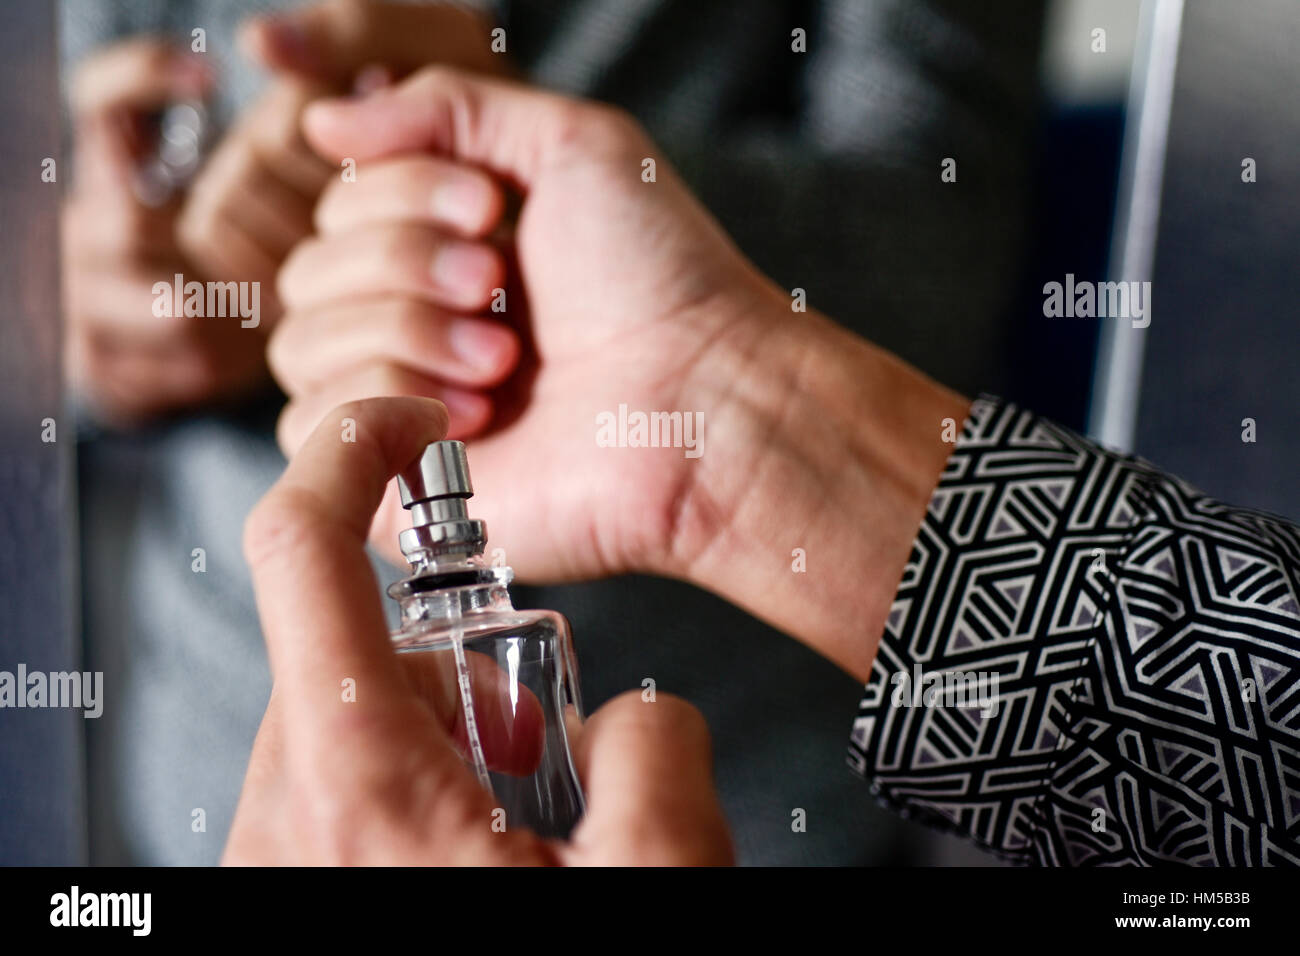 closeup of a young caucasian man spraying perfume on his wrists - Stock Image